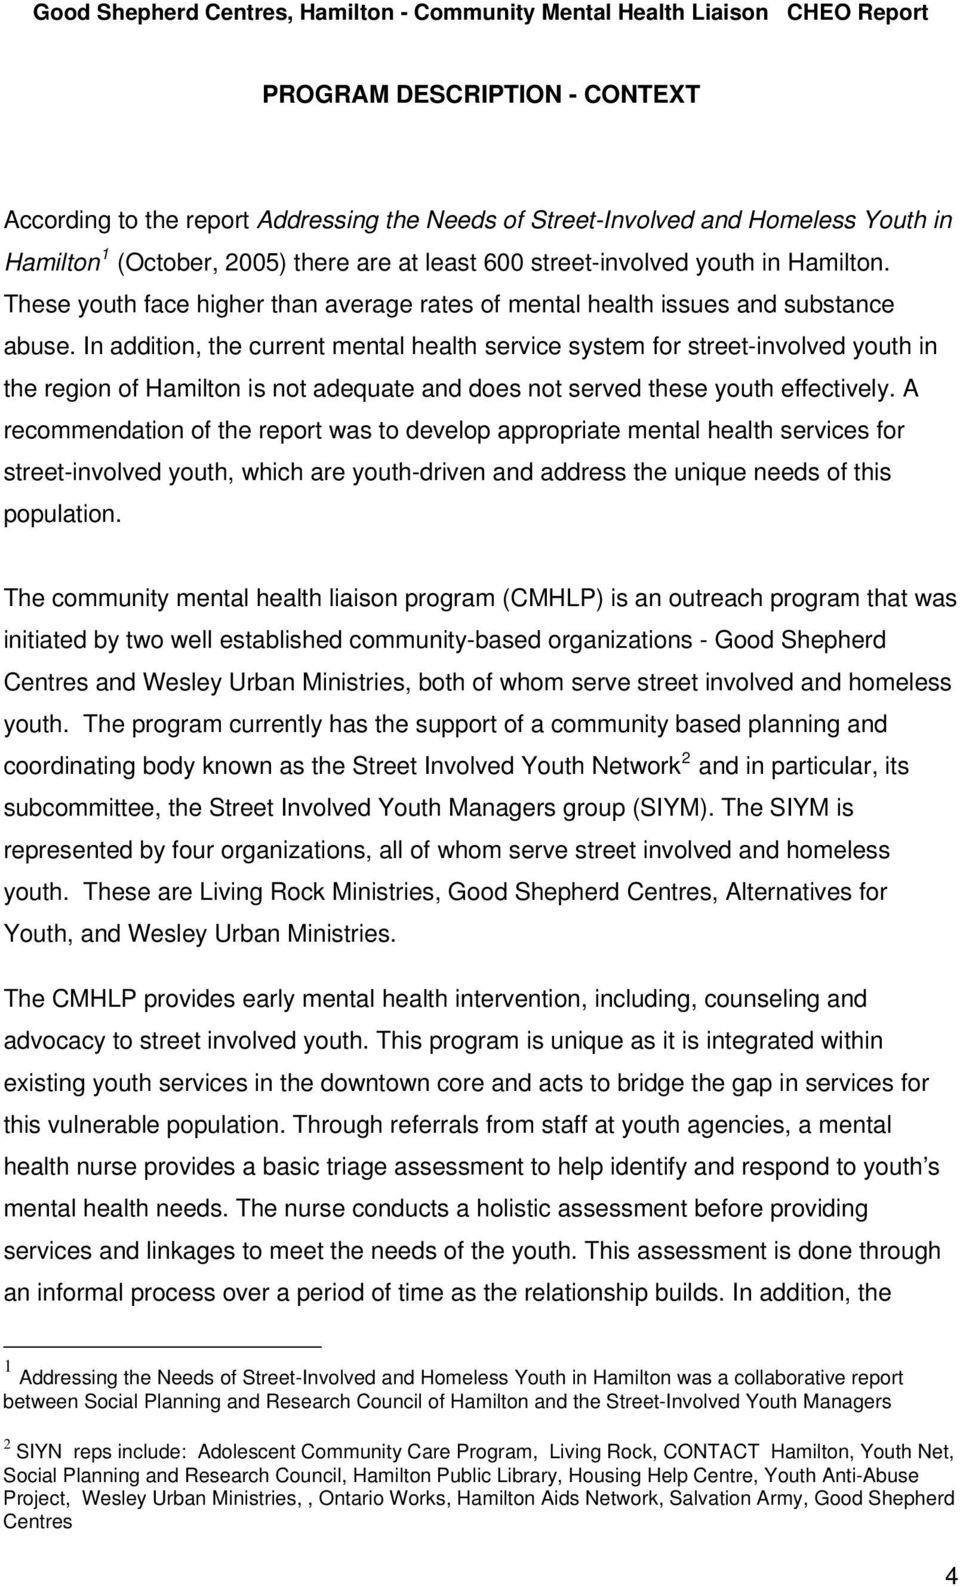 In addition, the current mental health service system for street-involved youth in the region of Hamilton is not adequate and does not served these youth effectively.